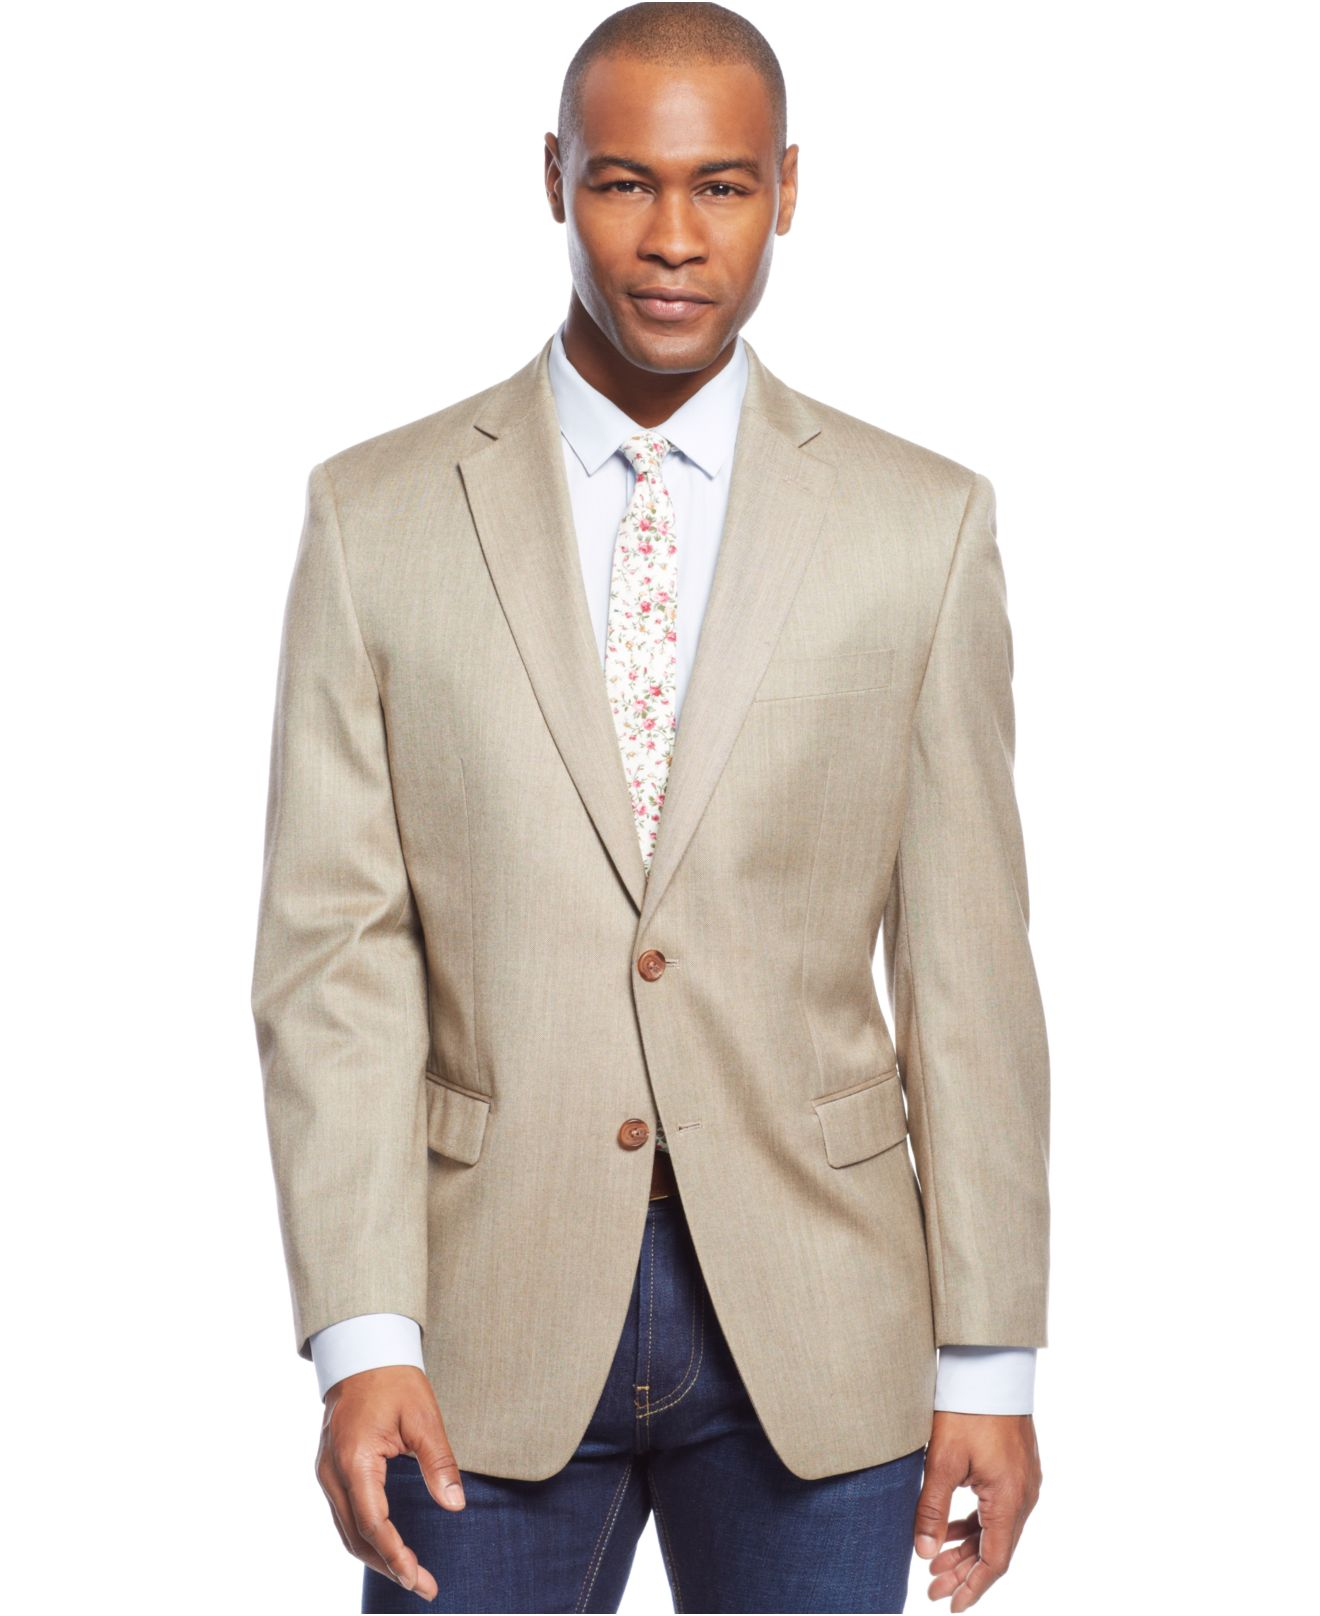 A vintage-inspired donegal tweed sport coat features a notched lapel, two-button front, open patch pockets and elbow patches. It goes great with a v-neck sweater vest or gingham-checked dress shirt. From sweaters and coats to thermal shirts and workwear, Sears has a wide variety of men's big and tall clothing for every occasion.